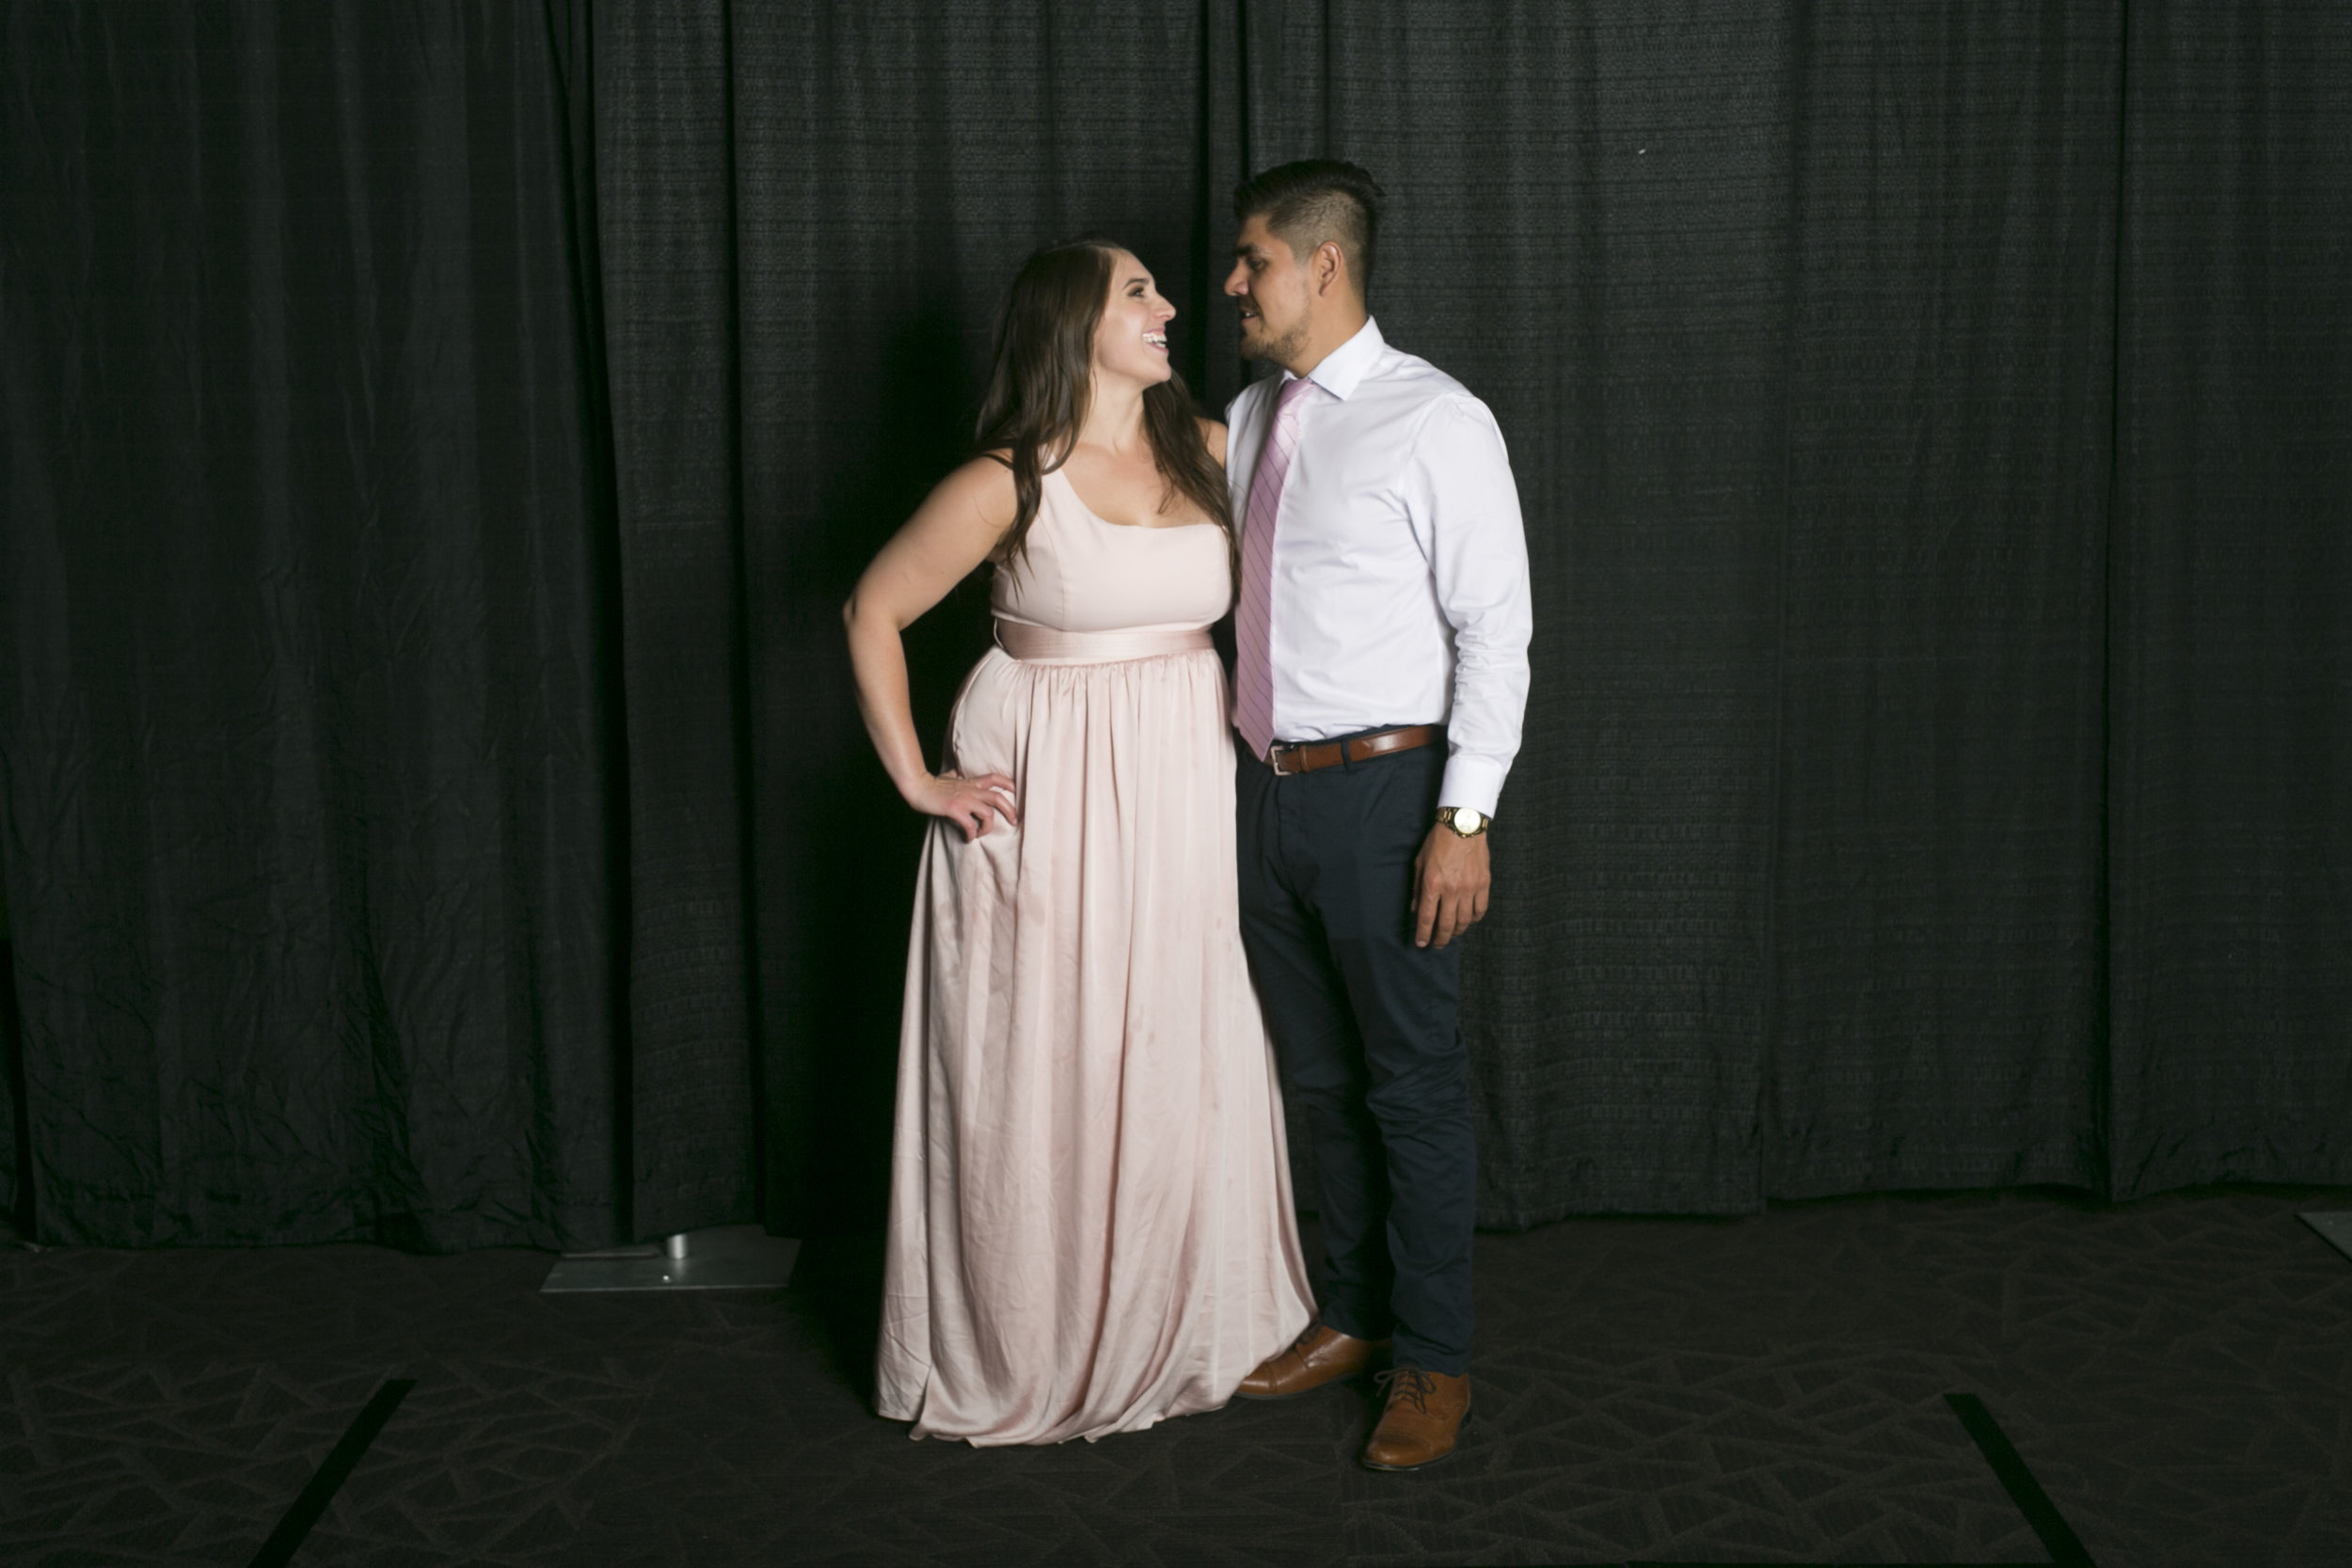 wedding photo booth-162.jpg